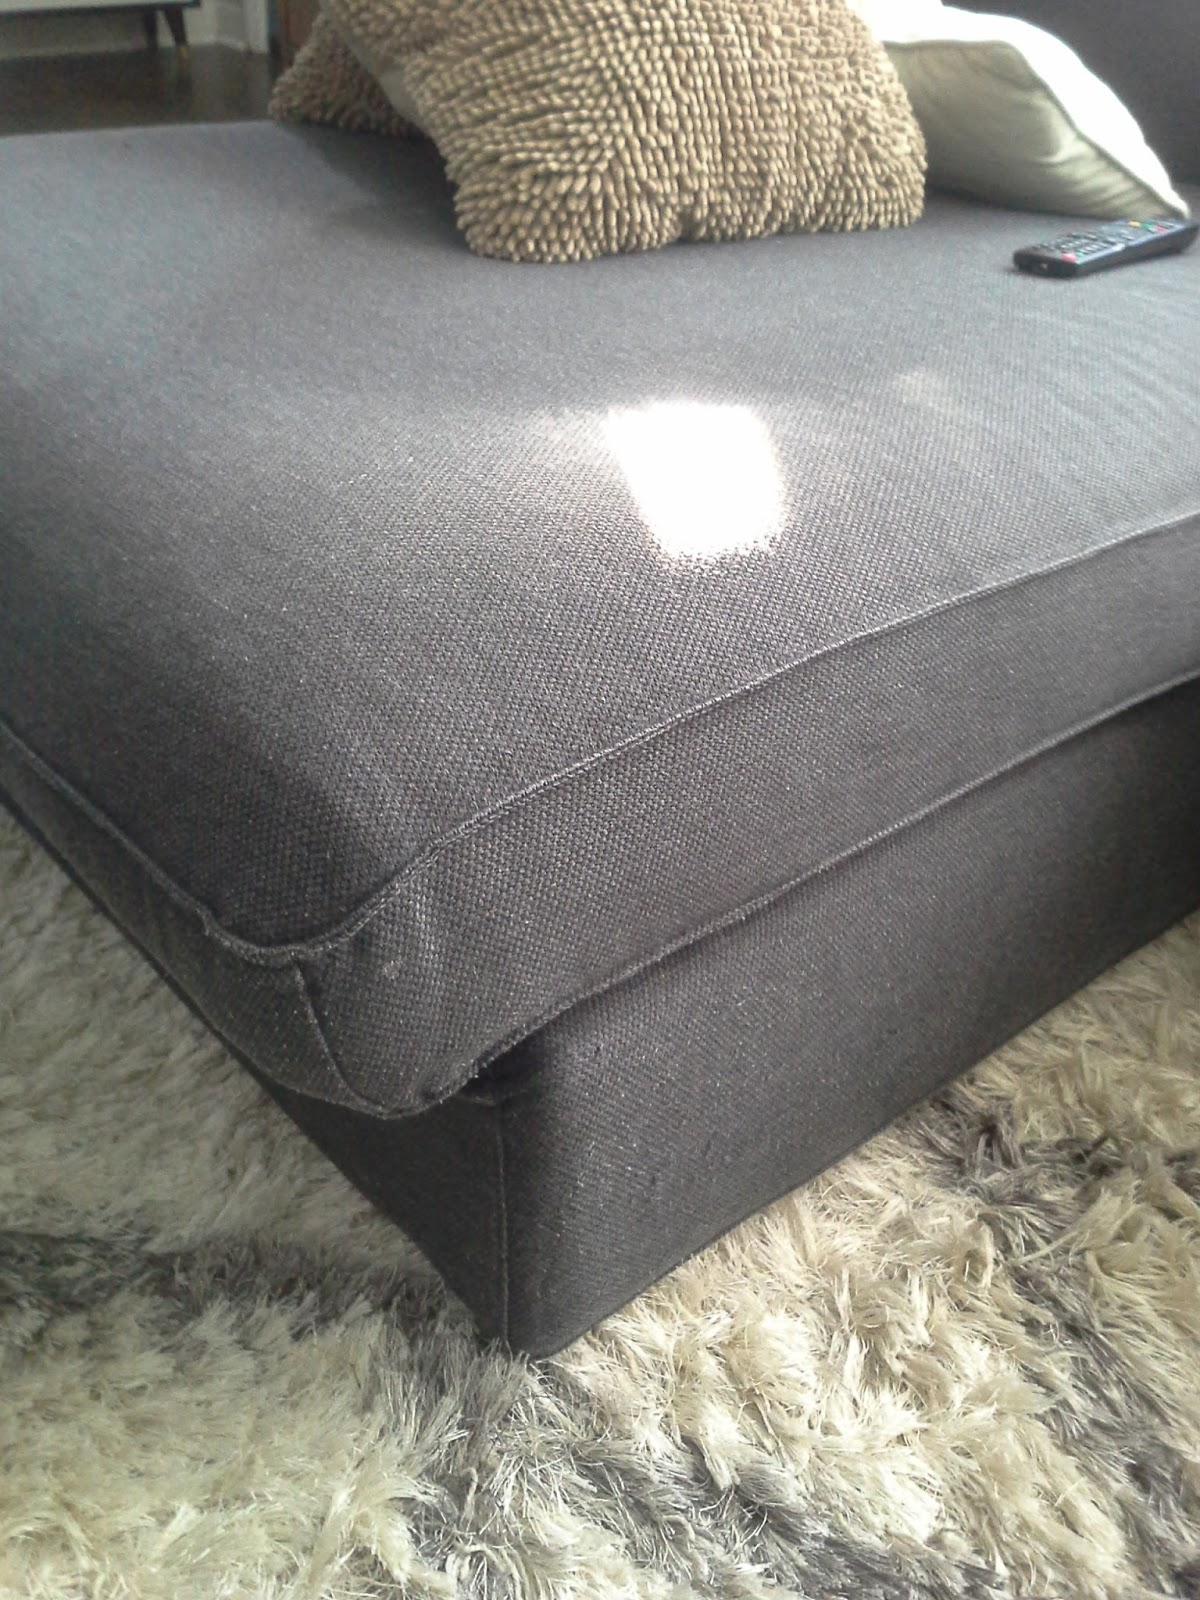 Ikea Kivik Sofa Review Leather Lilly S Home Designs Ikea Kivik Review